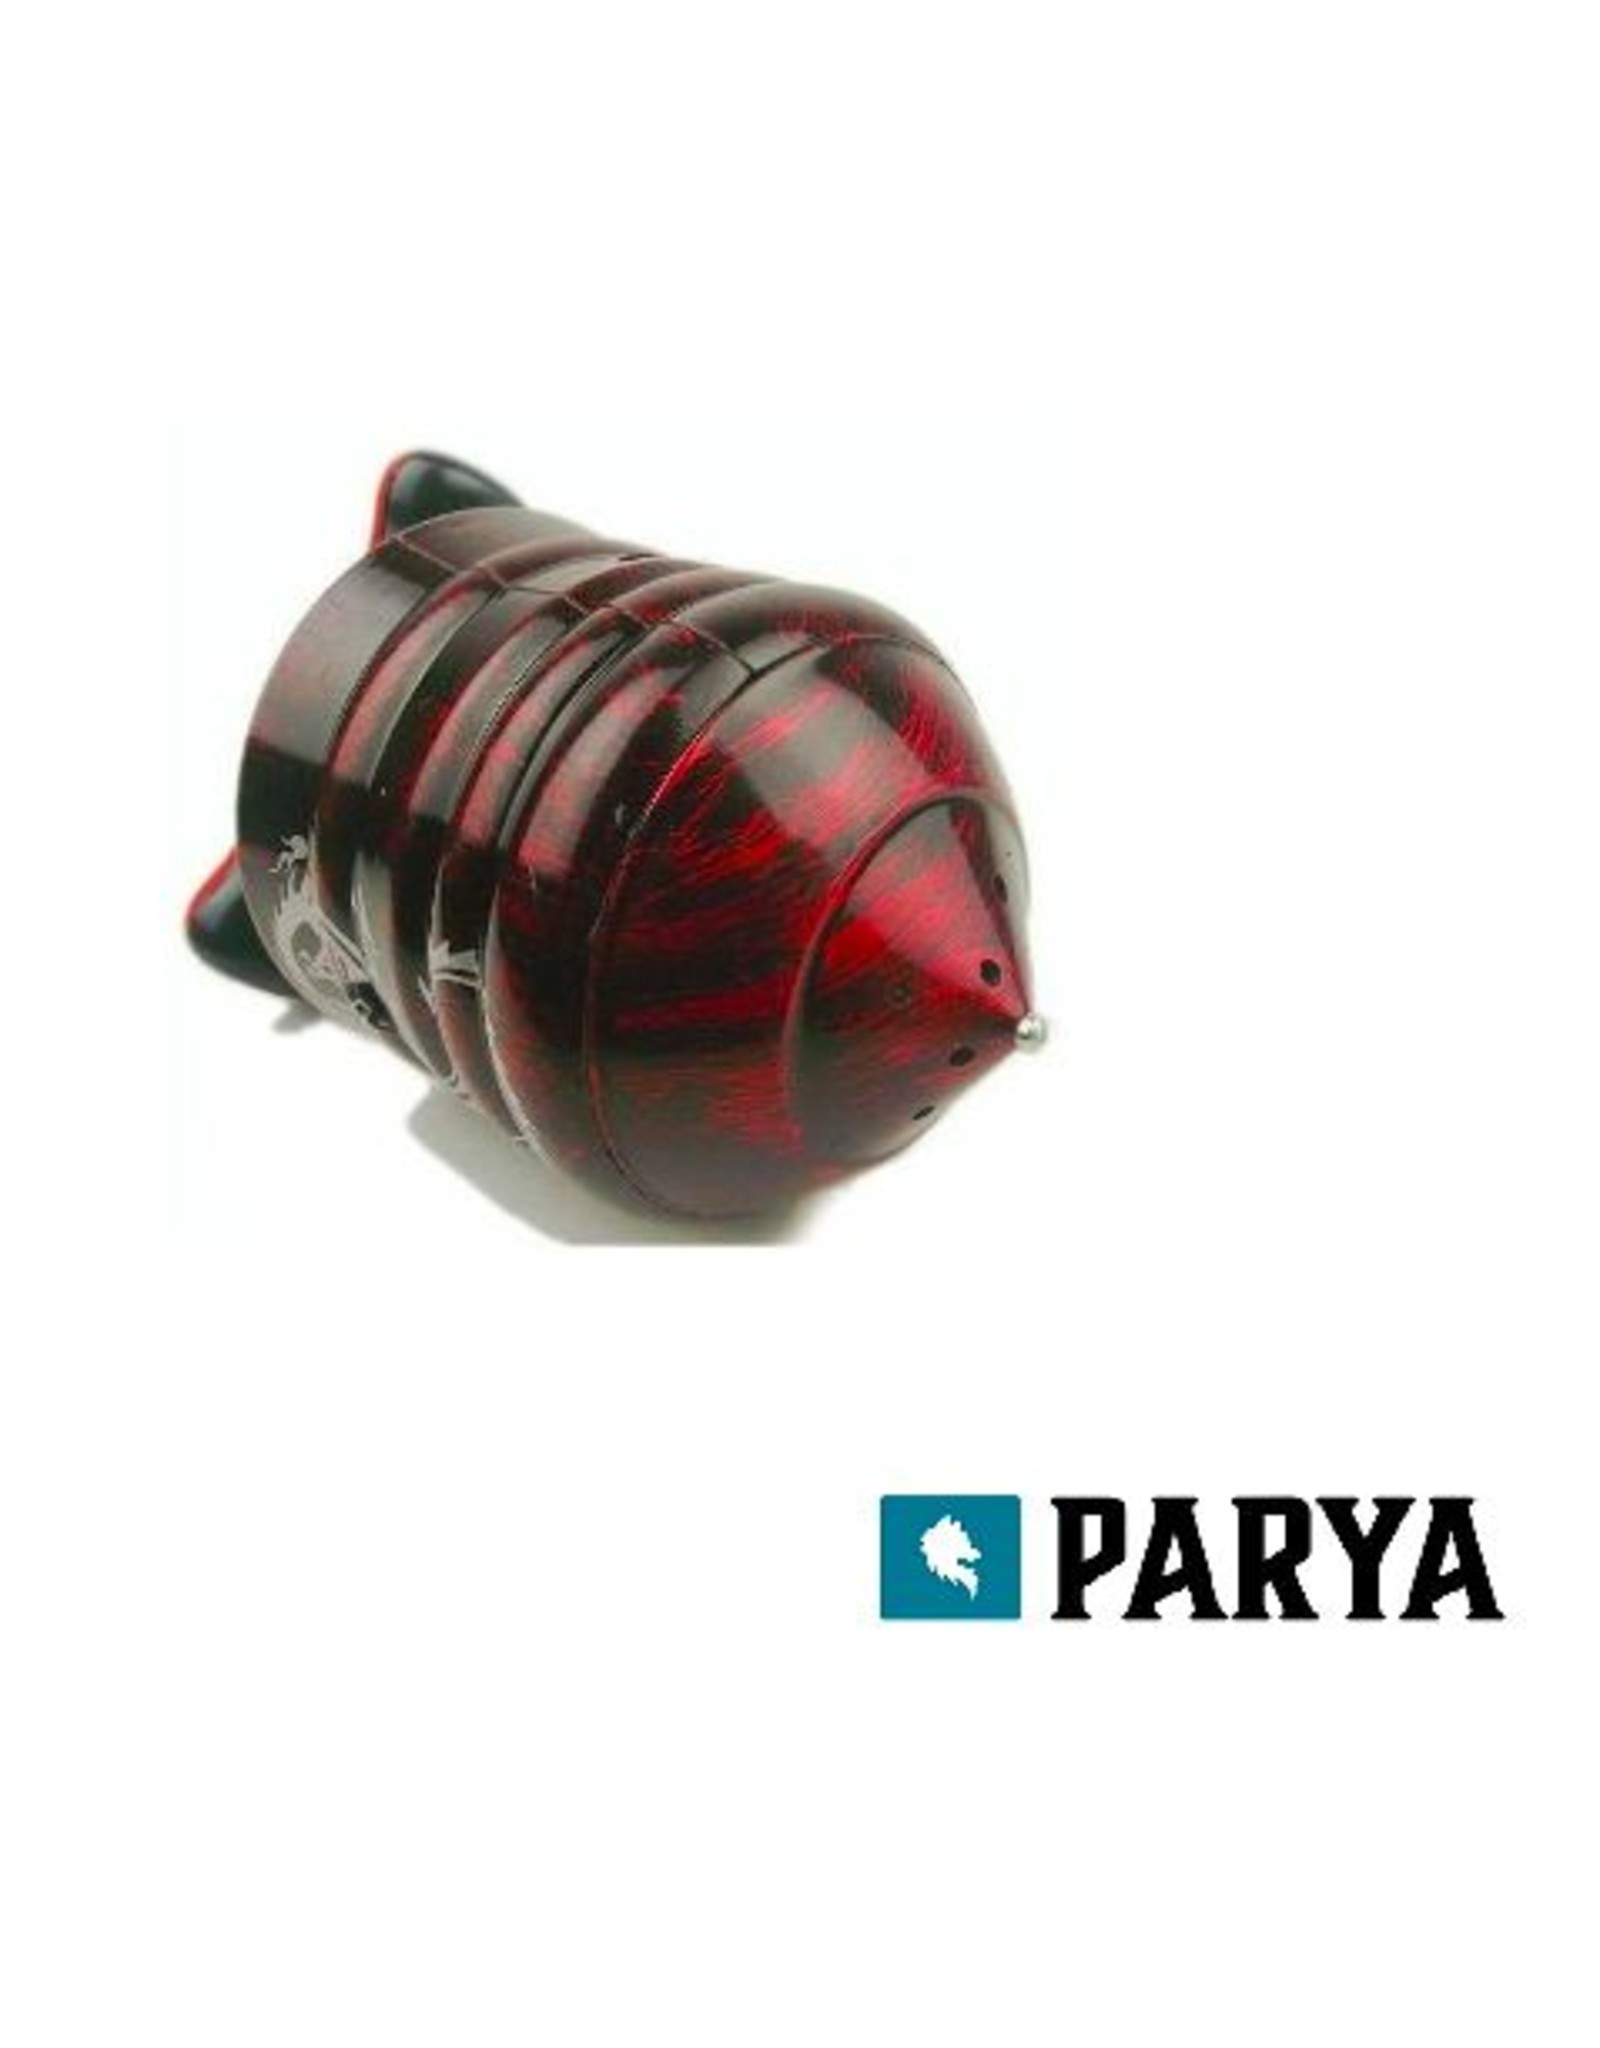 Parya Official Parya red dragon tol